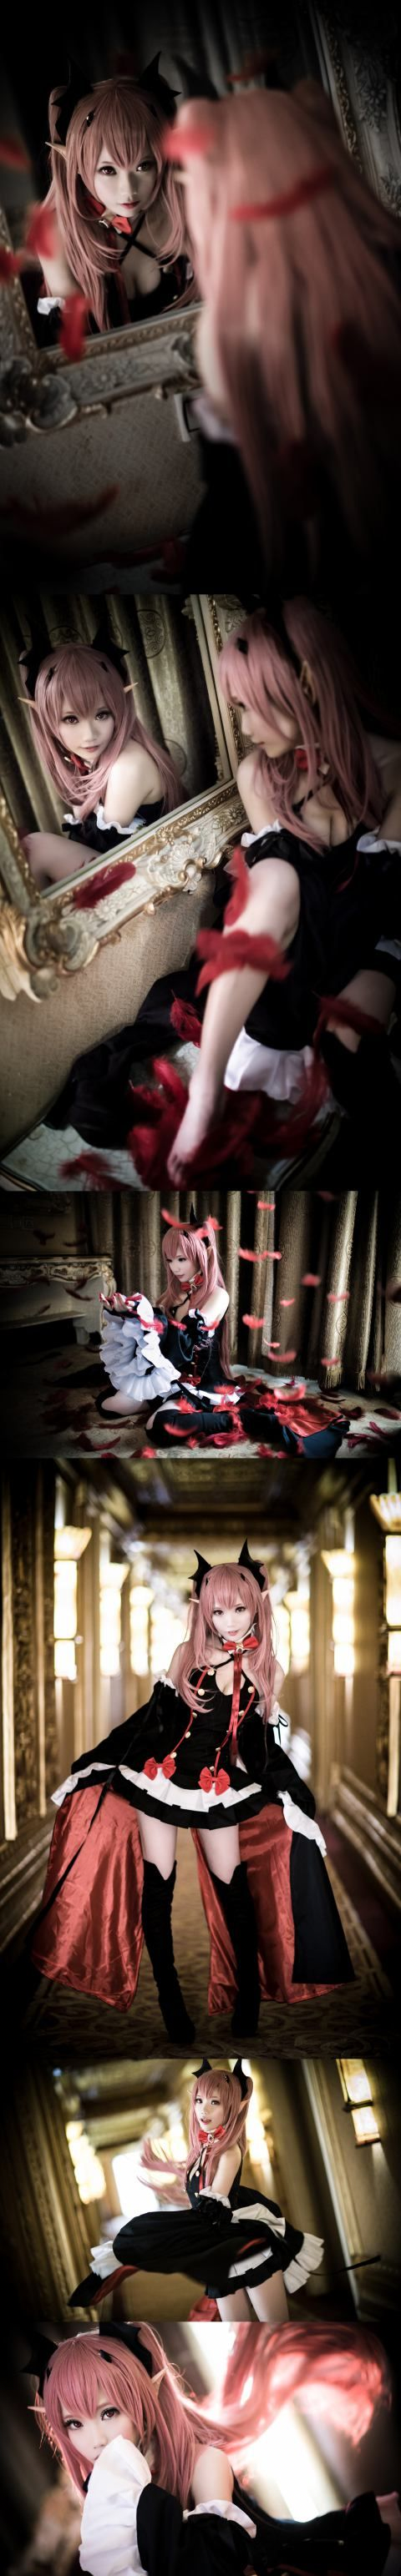 #Cosplay Owari no Seraph Hot #cosplay #sexy cosplay #erotic cosplay seen also at cosplayerotica.3dpornworld.com